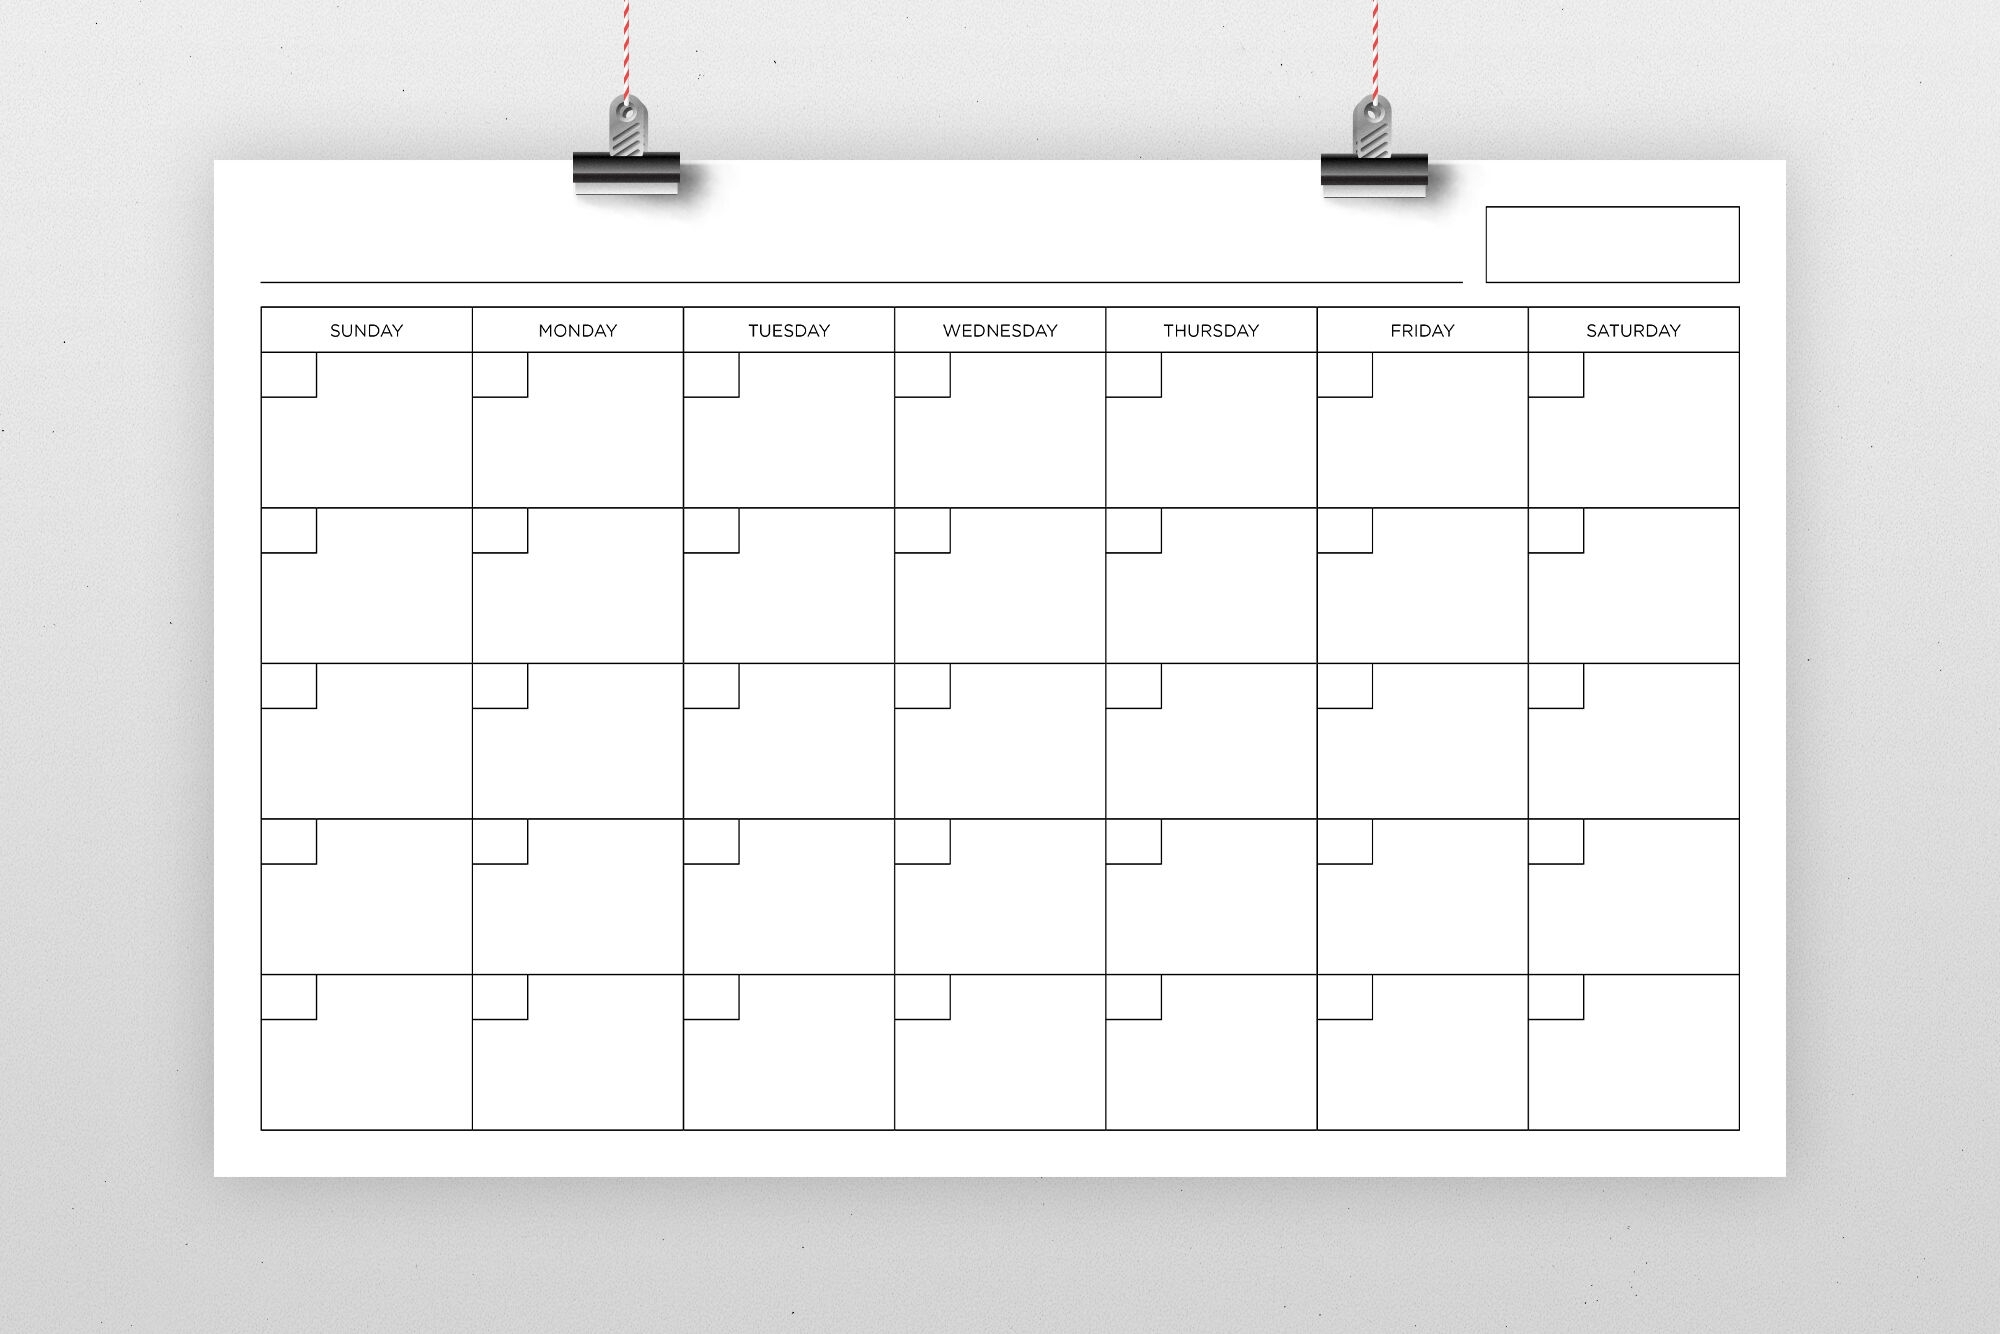 11X17 Inch Blank Calendar Page Templaterunning With